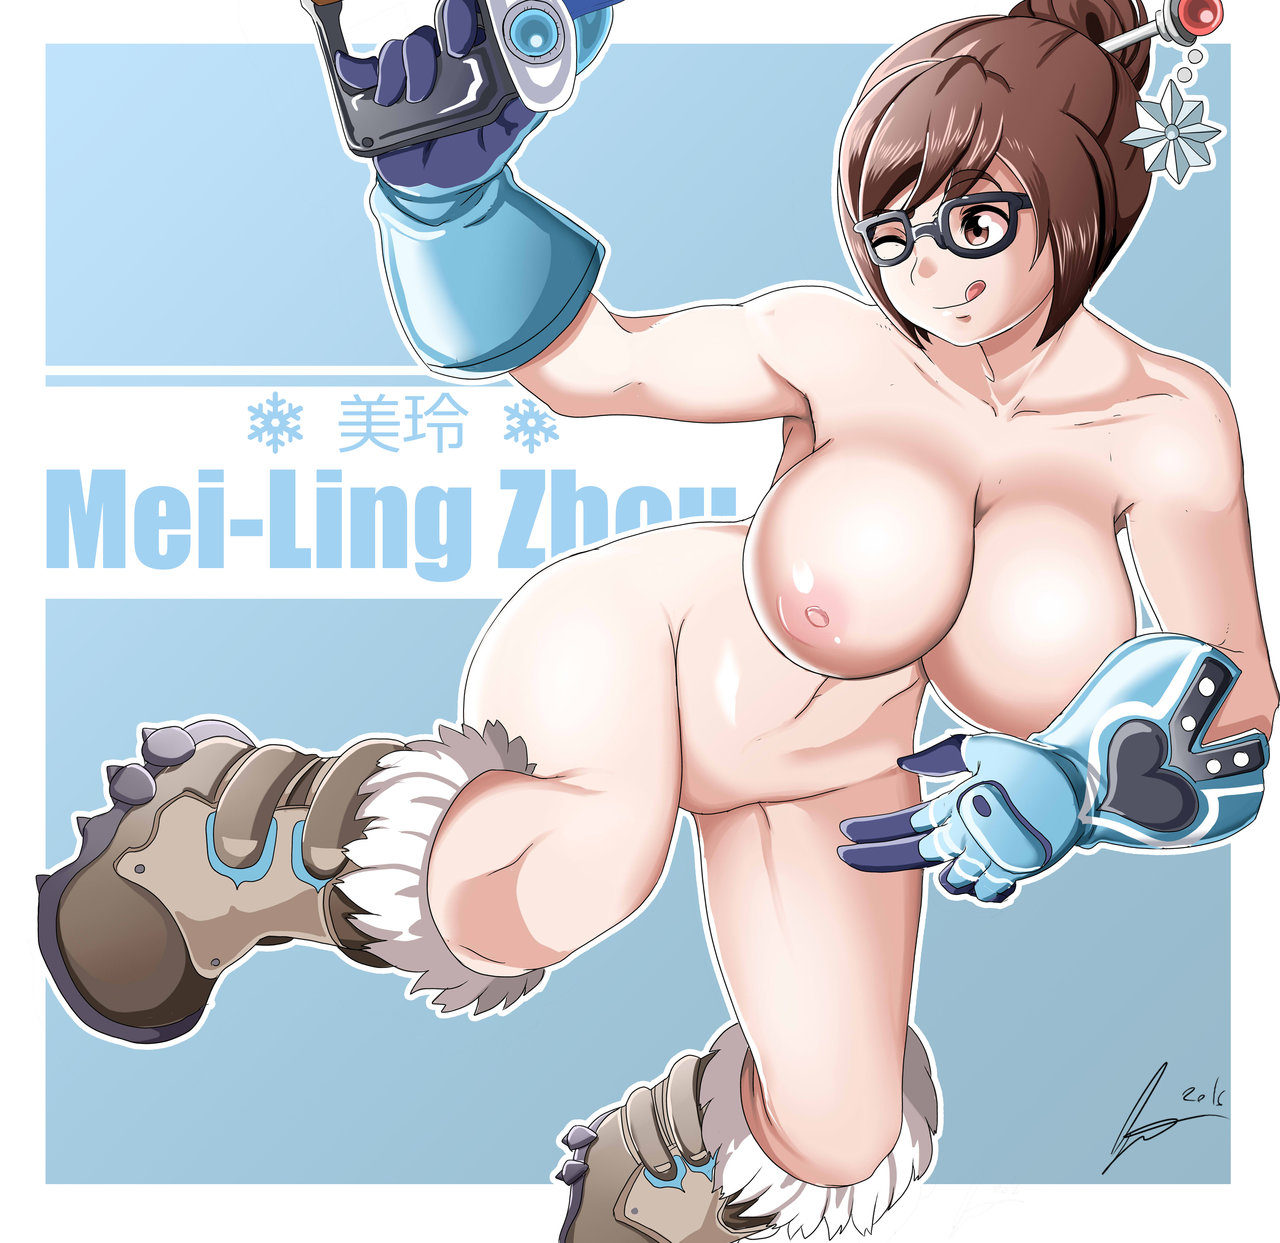 Big Boobs Mei Ling On Ice